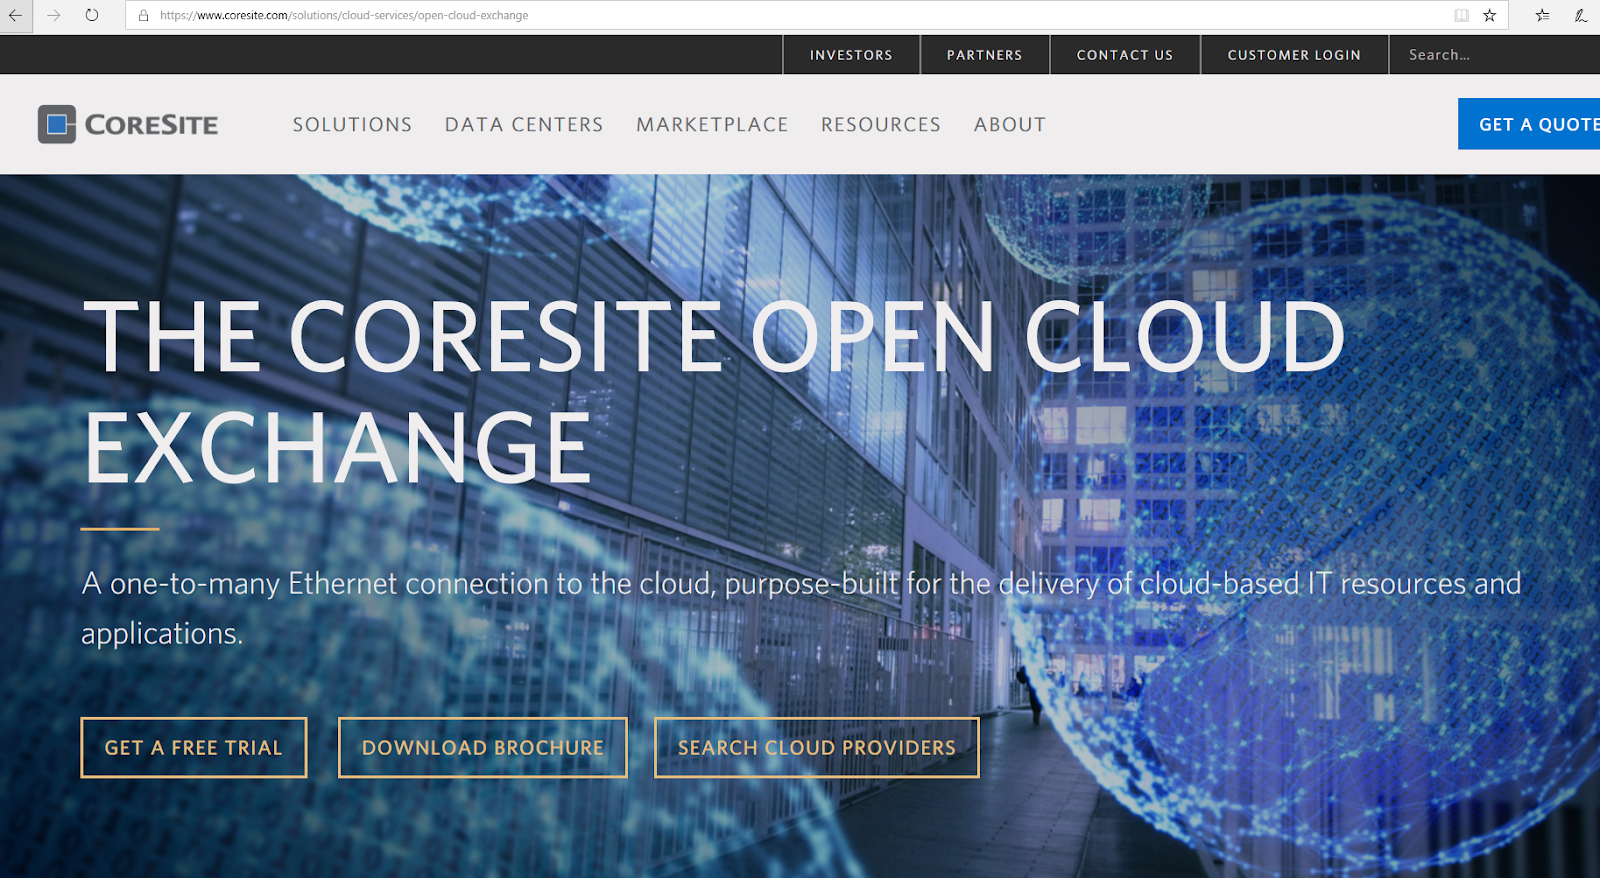 Converge! Network Digest: CoreSite's Cloud Exchange offers